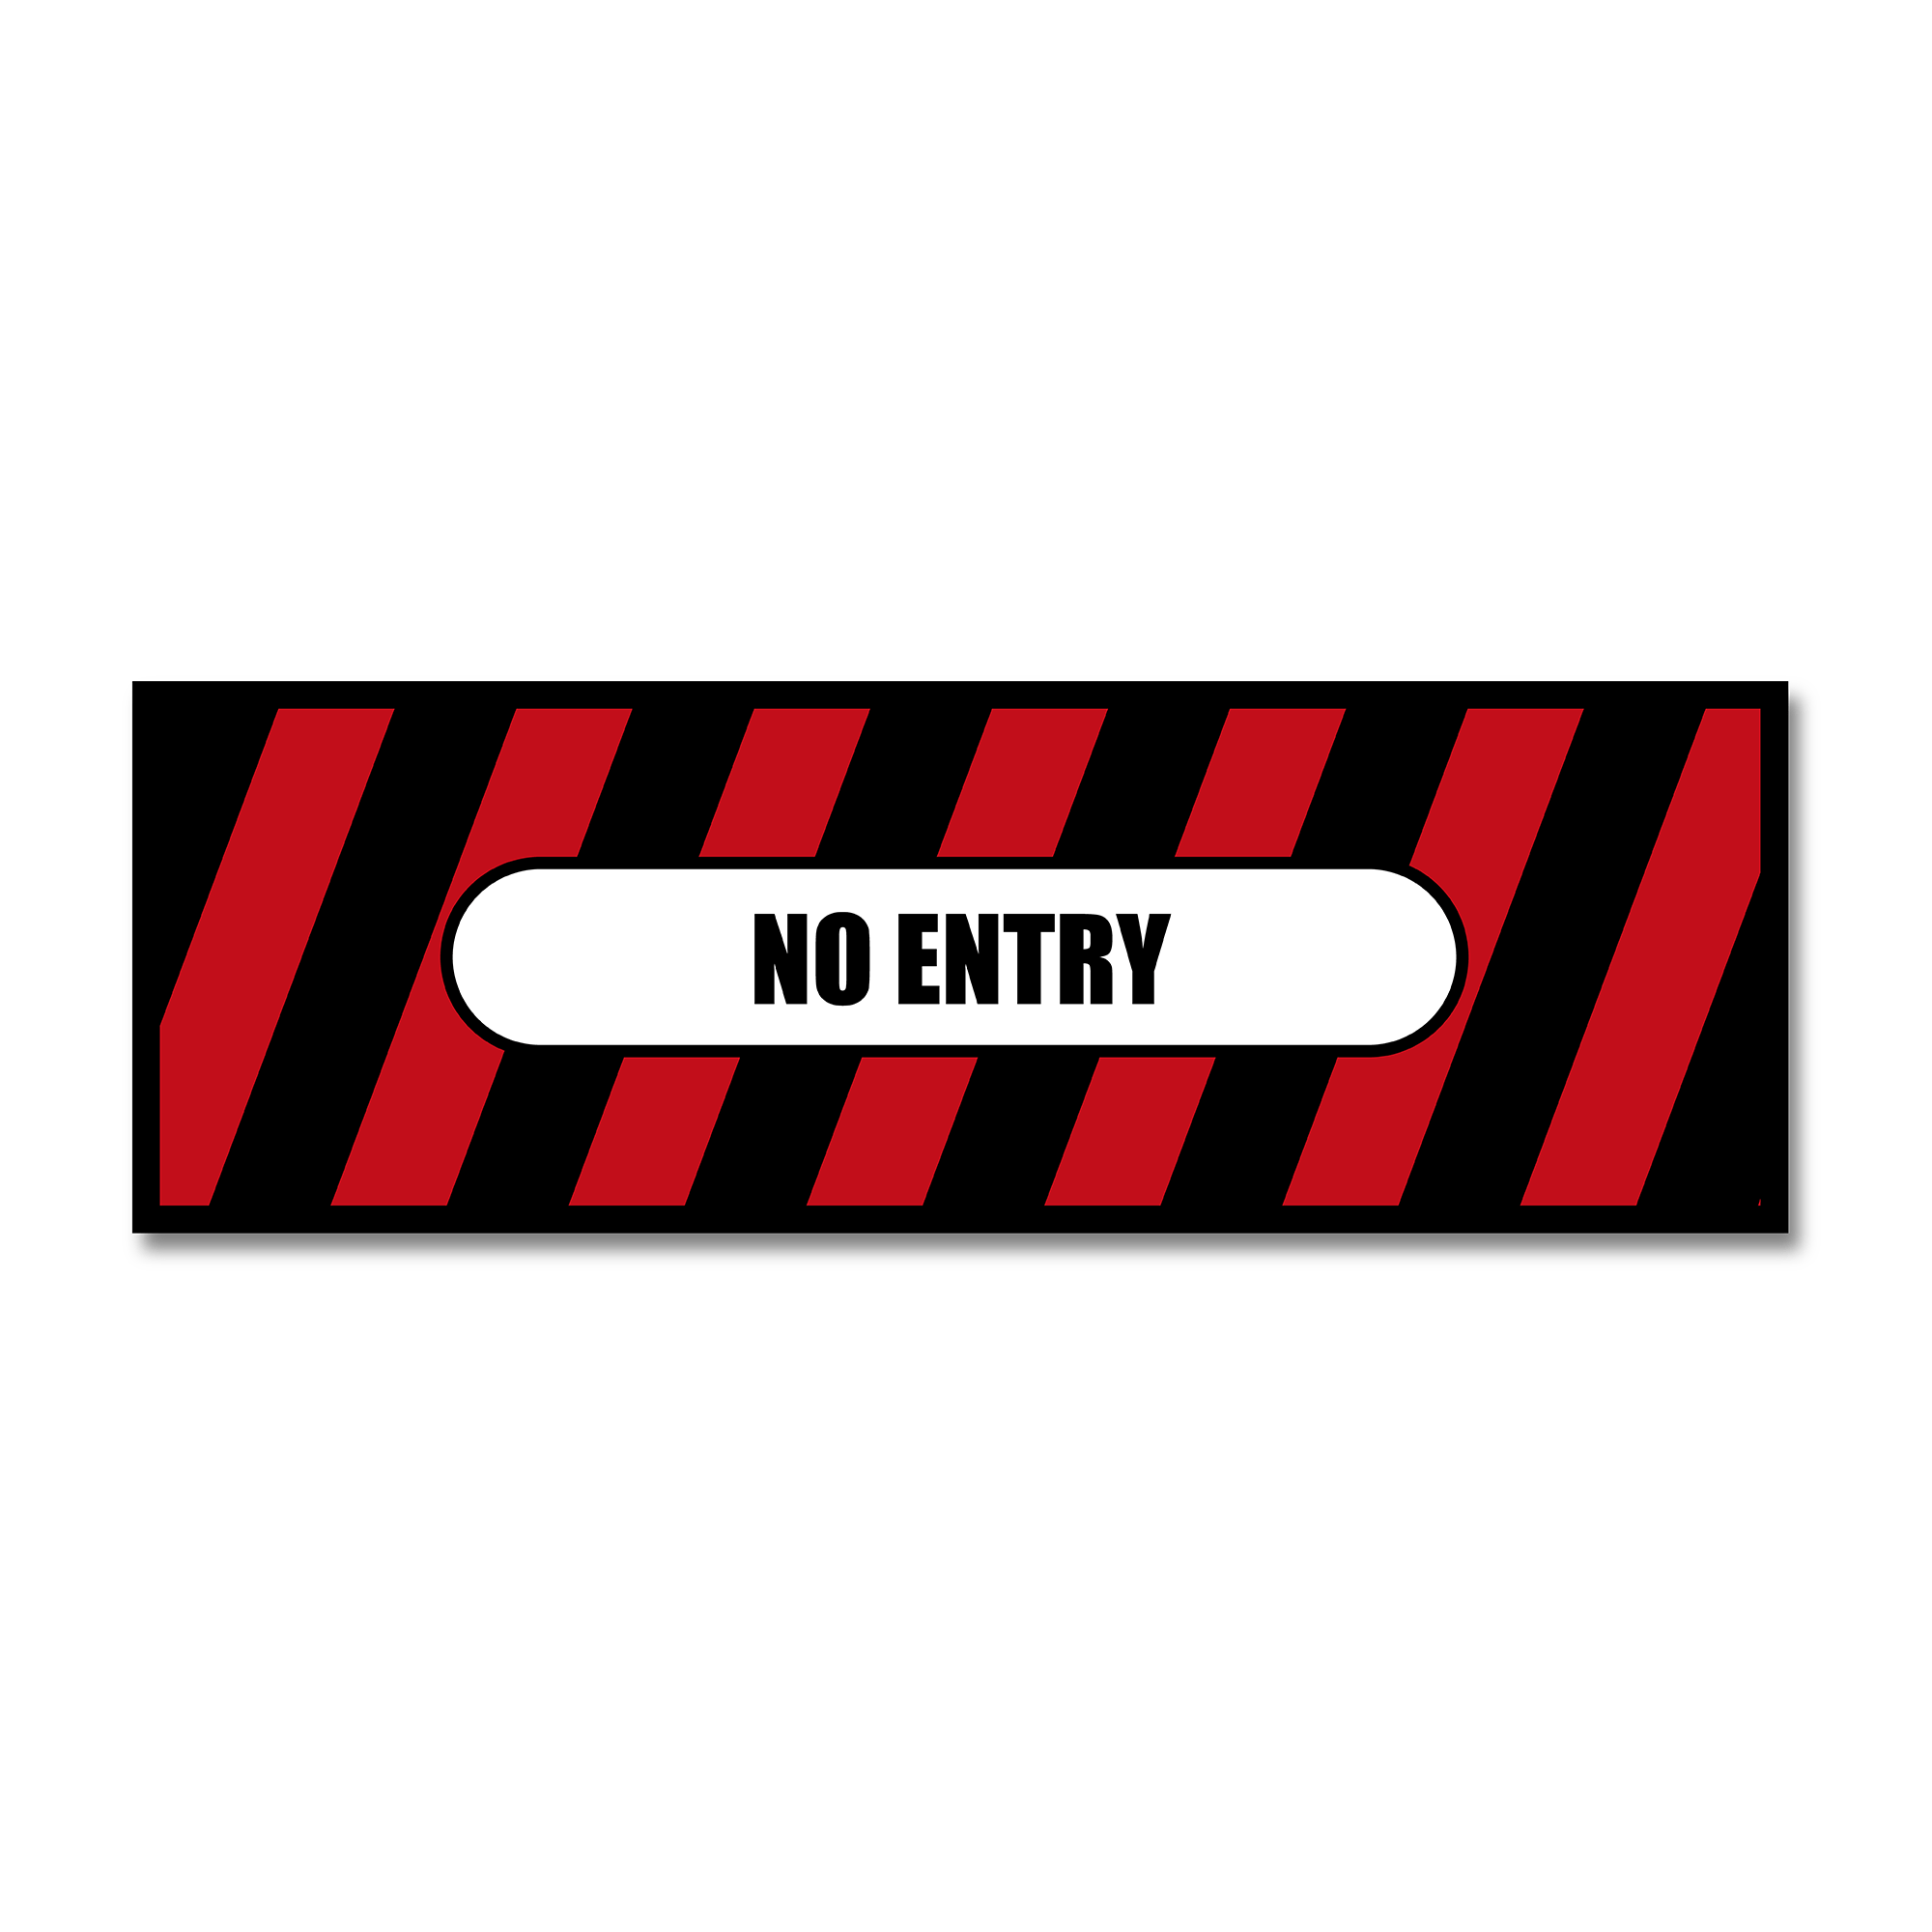 No Entry - Floor Safety Sticker (Floor Shark) - Rounded Edge Store